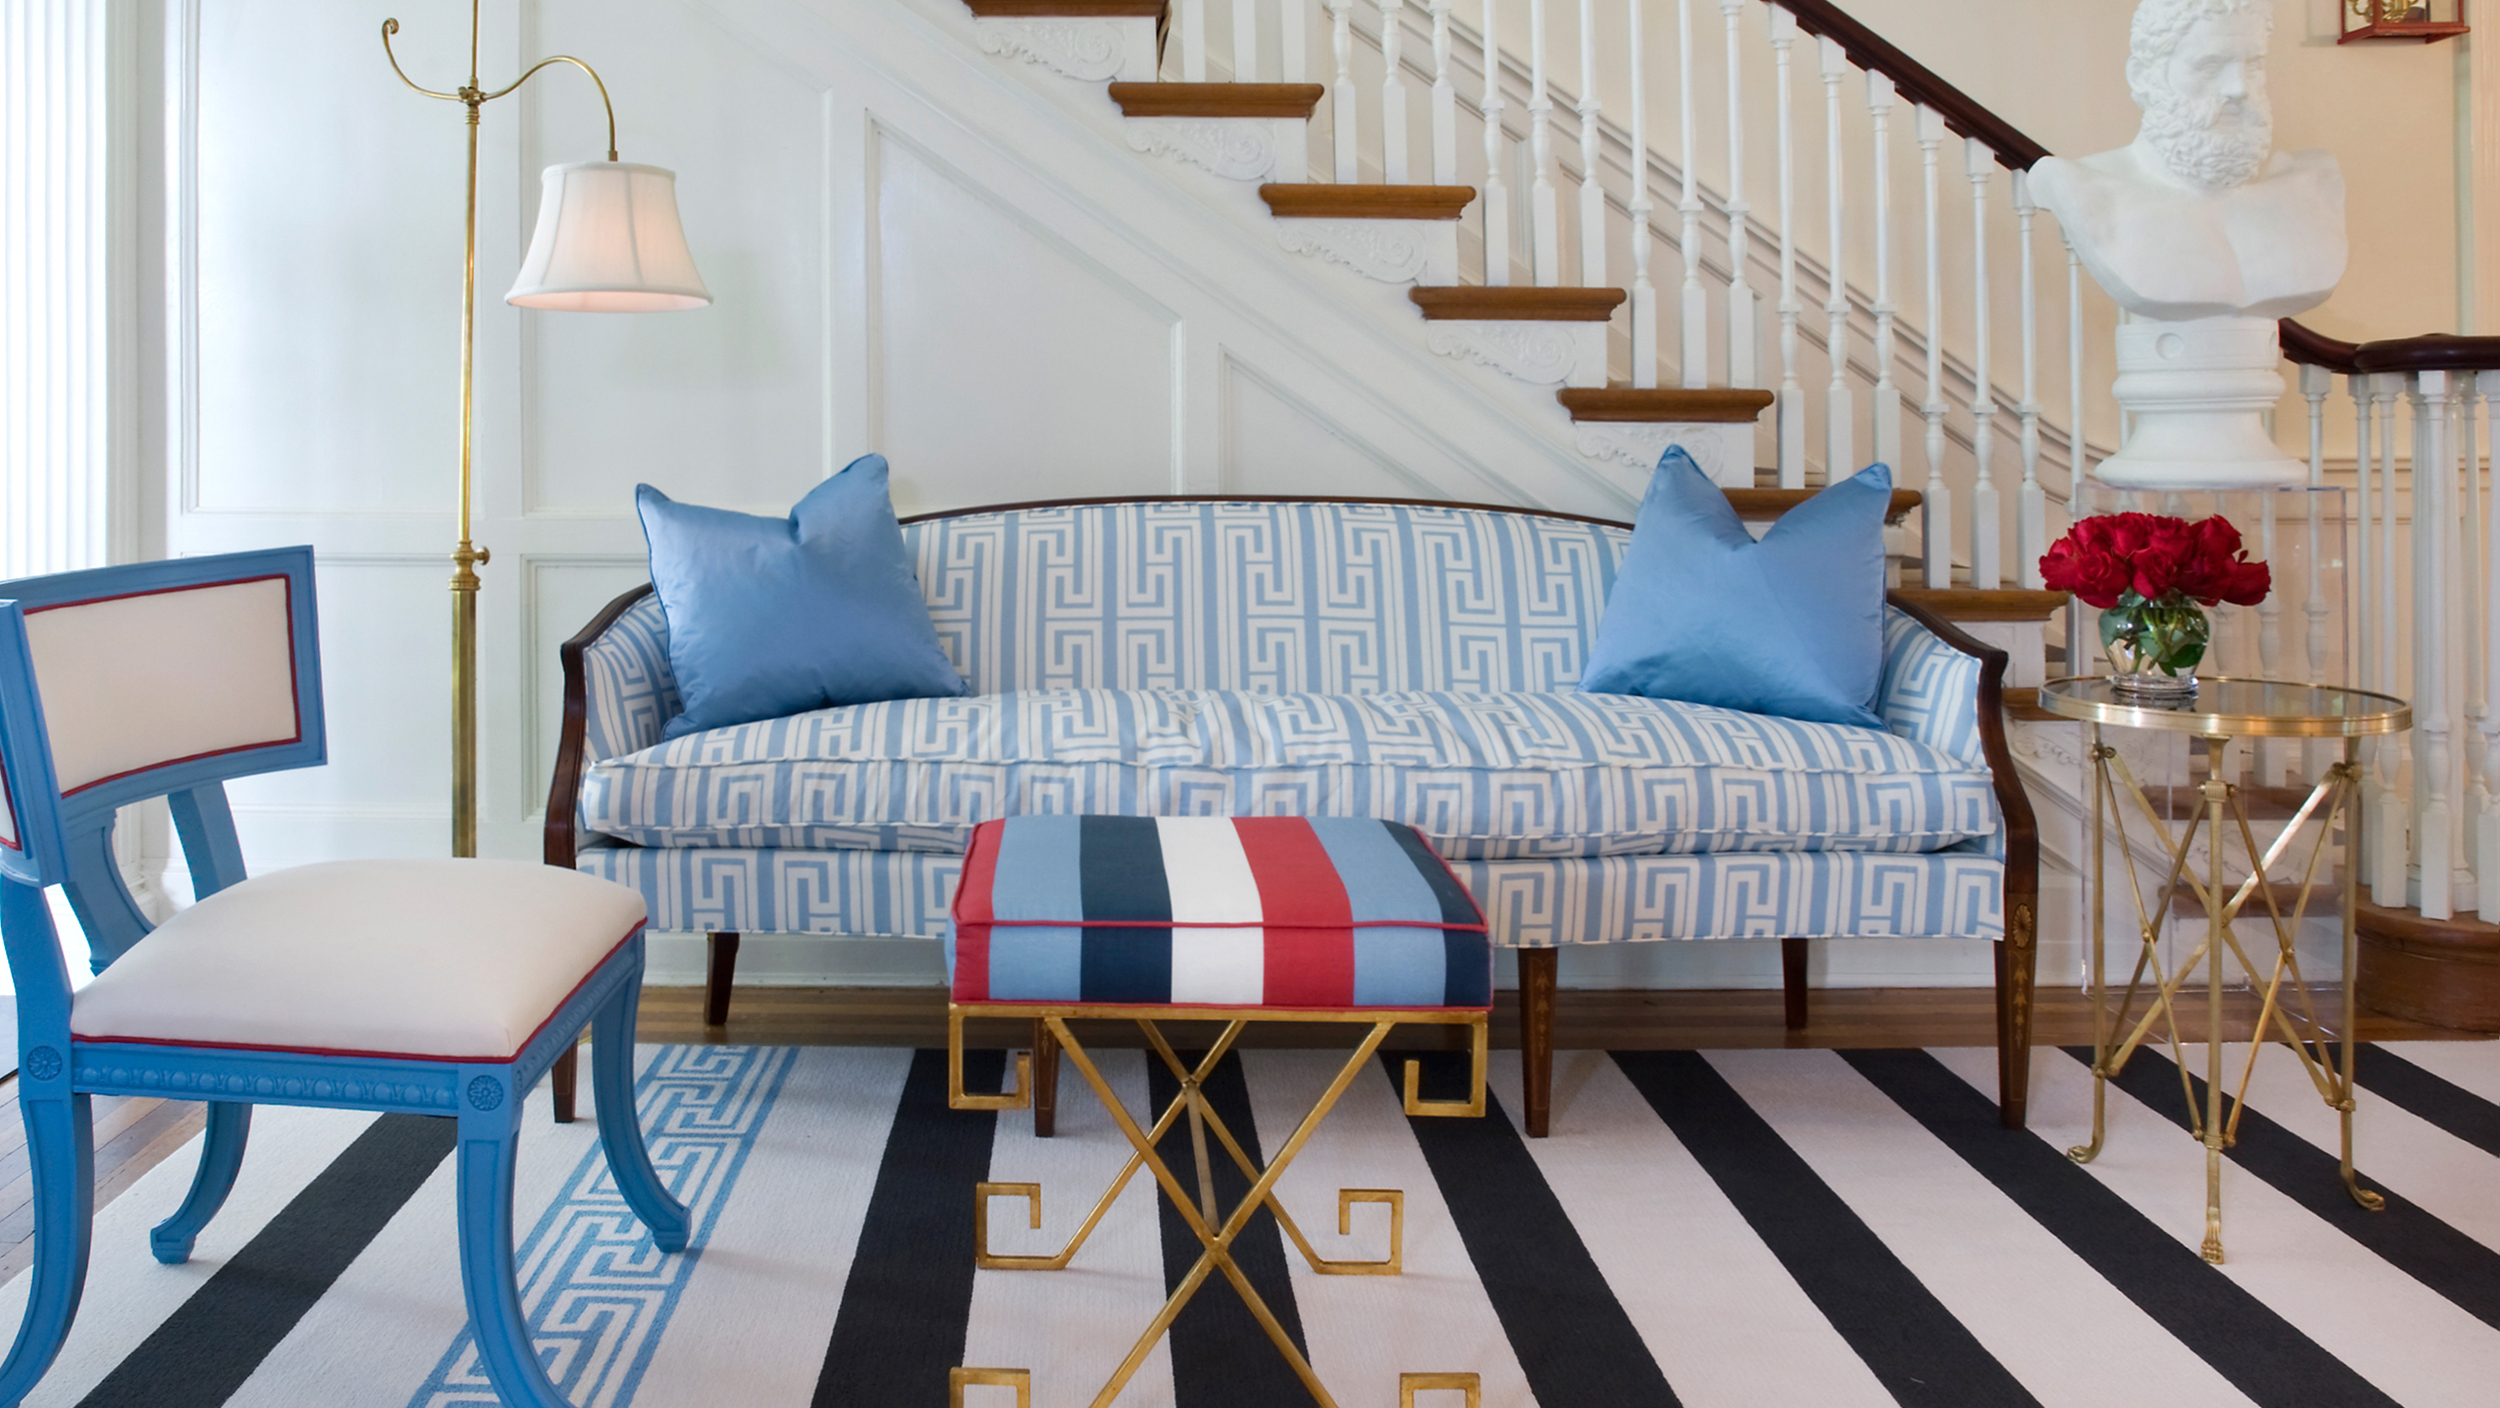 Stripes Chevron How to mix patterns in decor TODAYcom